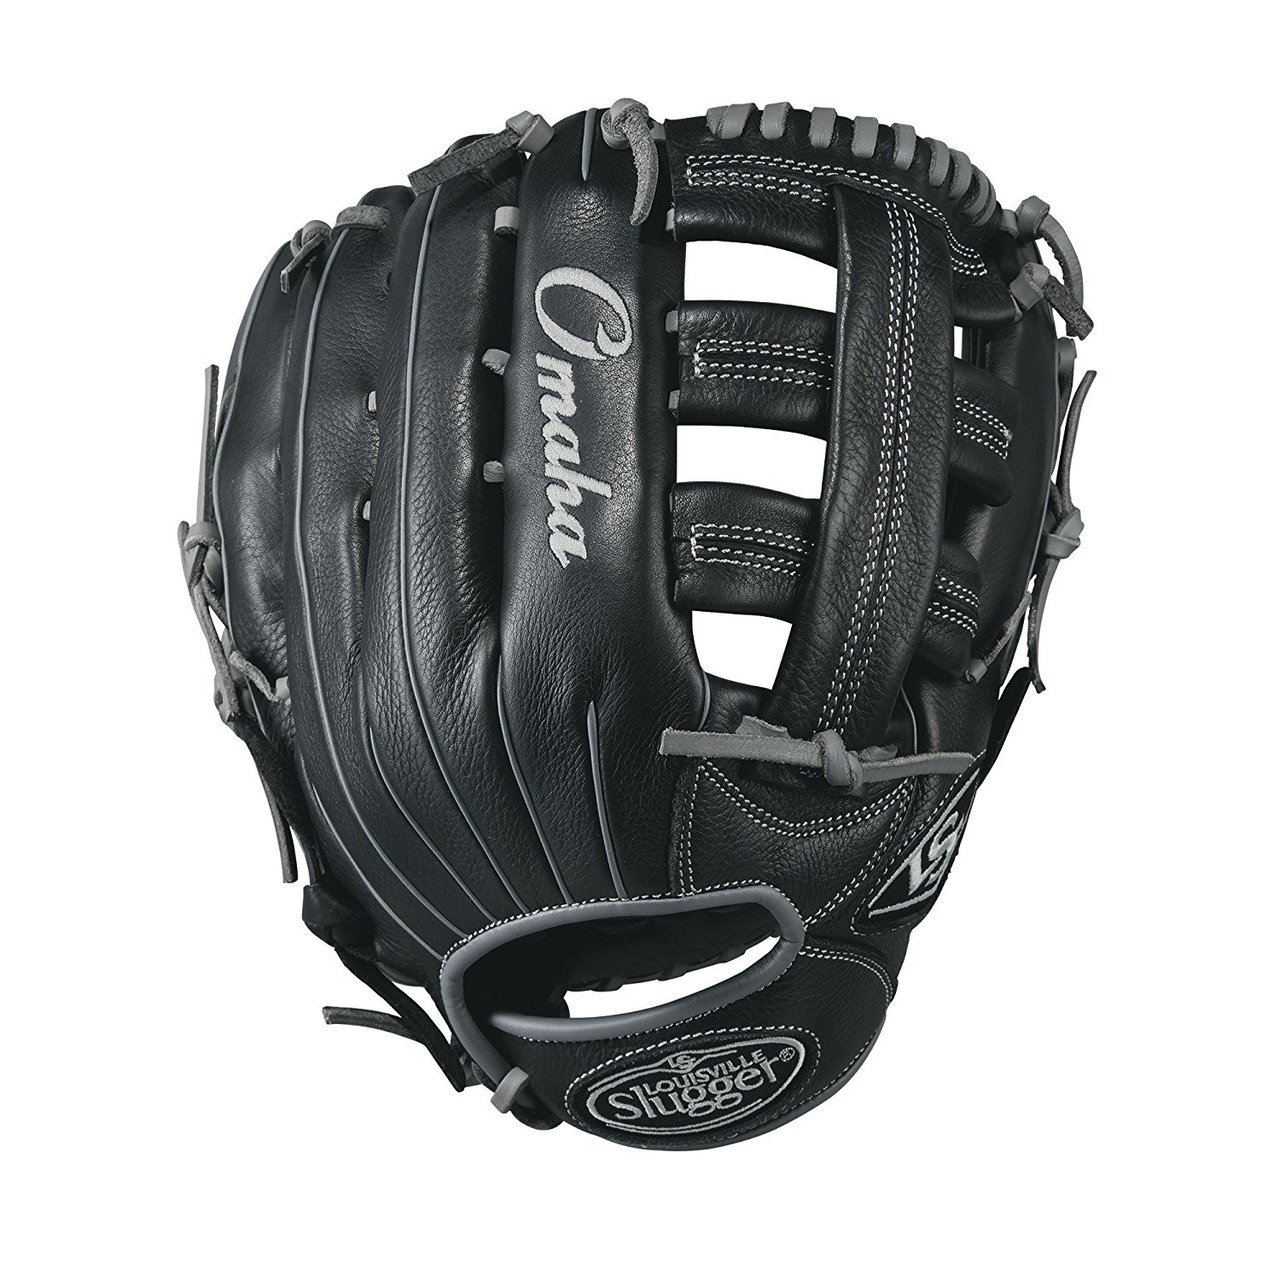 louisville-slugger-omaha-12-5-inch-lomrb17125-baseball-glove-right-hand-throw OMRB17125-RightHandThrow  887768498566 Designed with the young avid travel baseball player in mind the